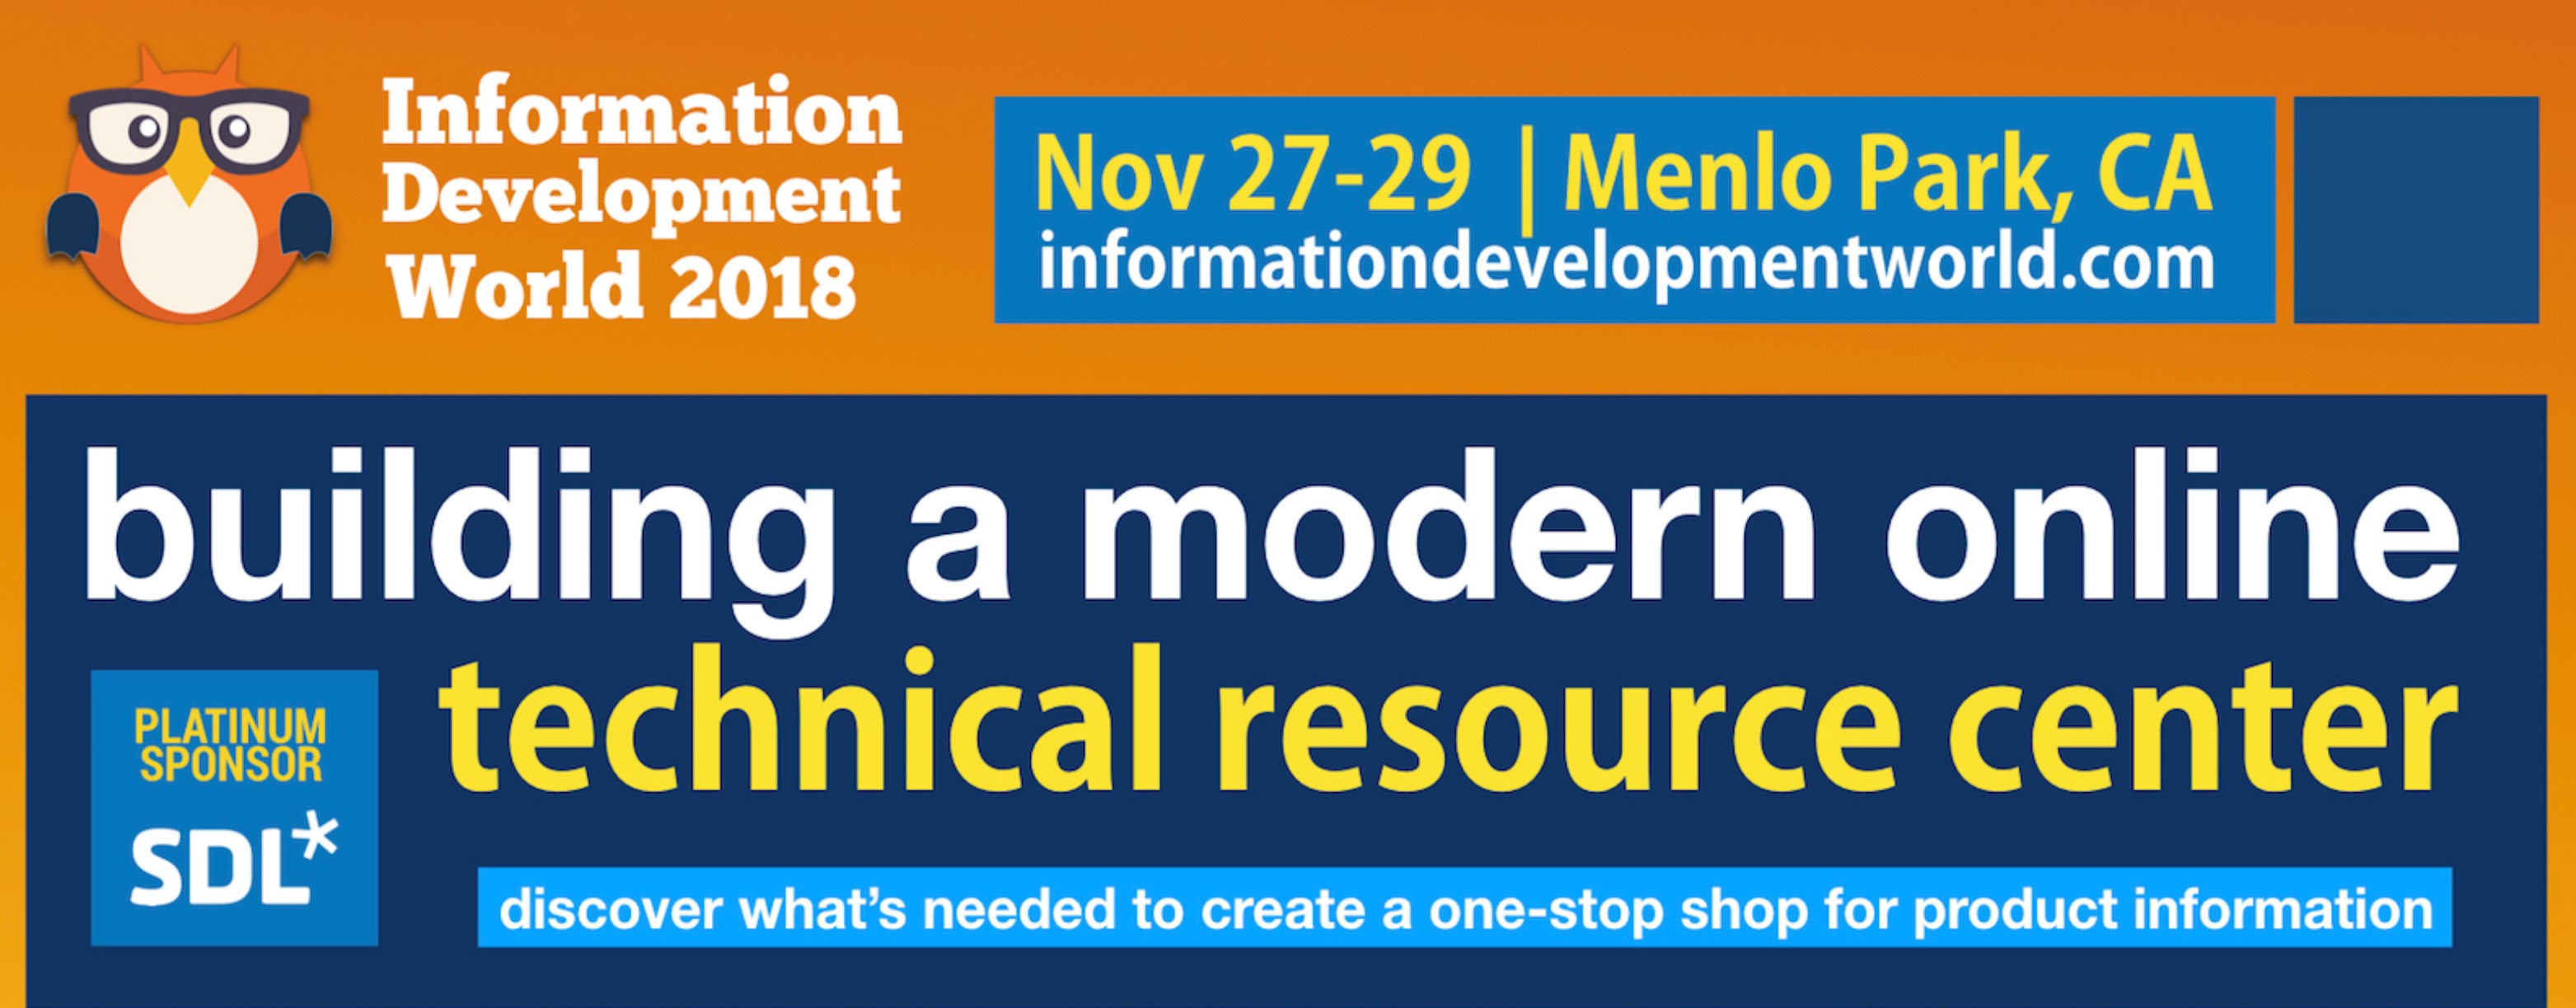 Information Development World 2018 Conference